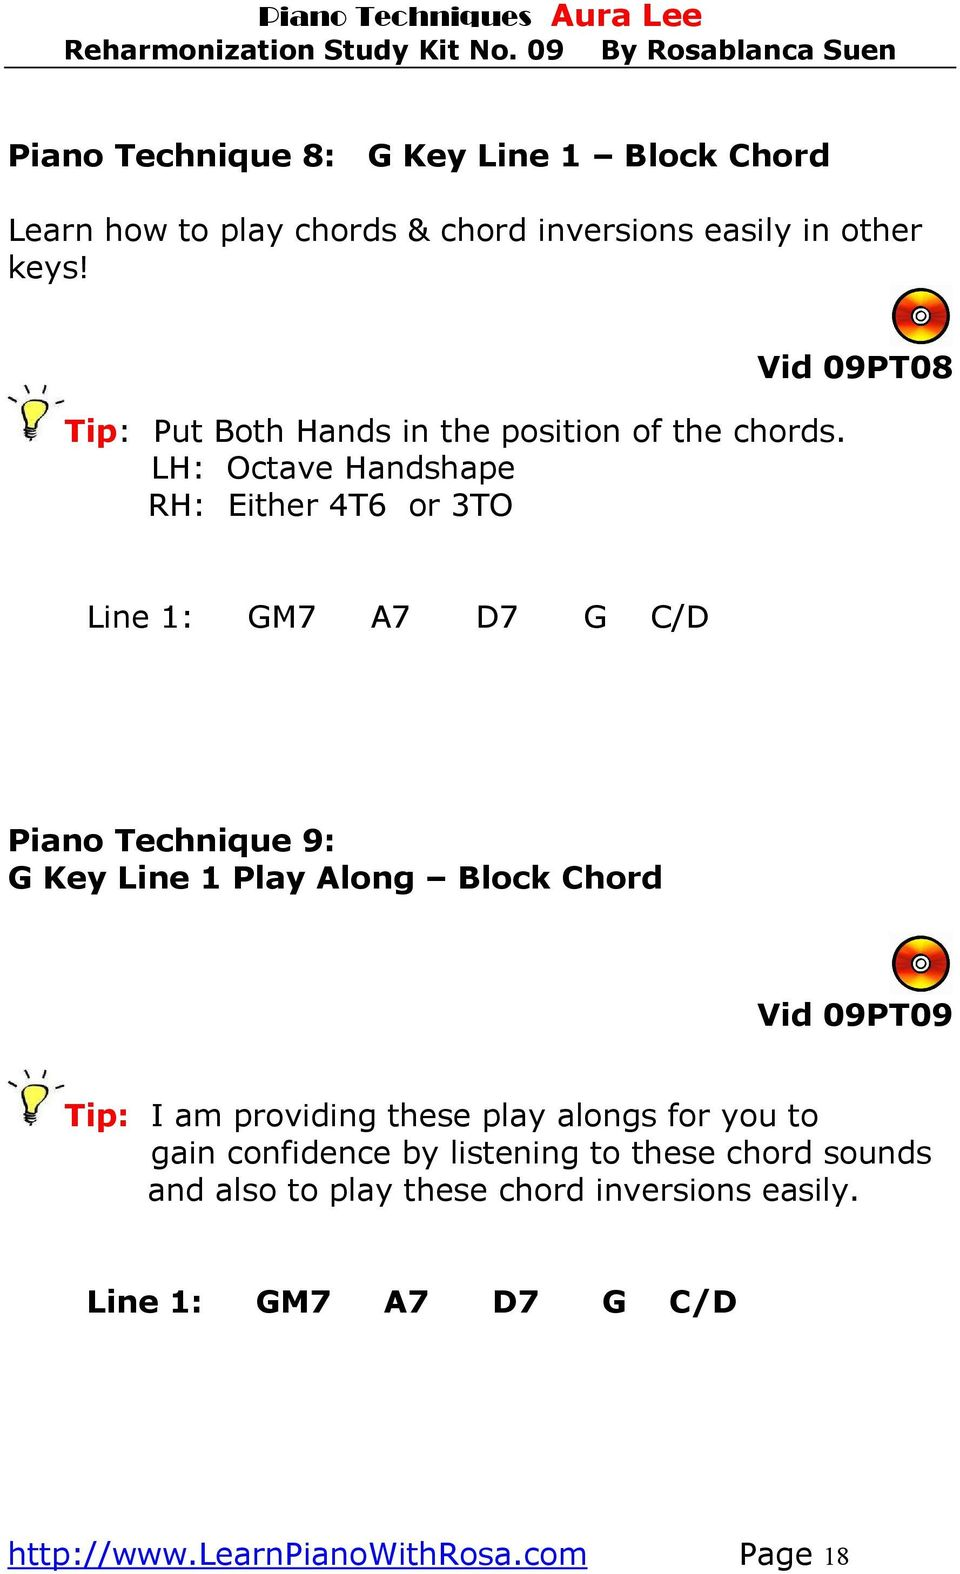 Study Kit No 9 Aura Lee Love Me Tender Pdf The Chord Symble A7 Above A Bar It Means We Have To Play Lh Octave Handshape Rh Either 4t6 Or 3to Vid 09pt08 Line 1 Gm7